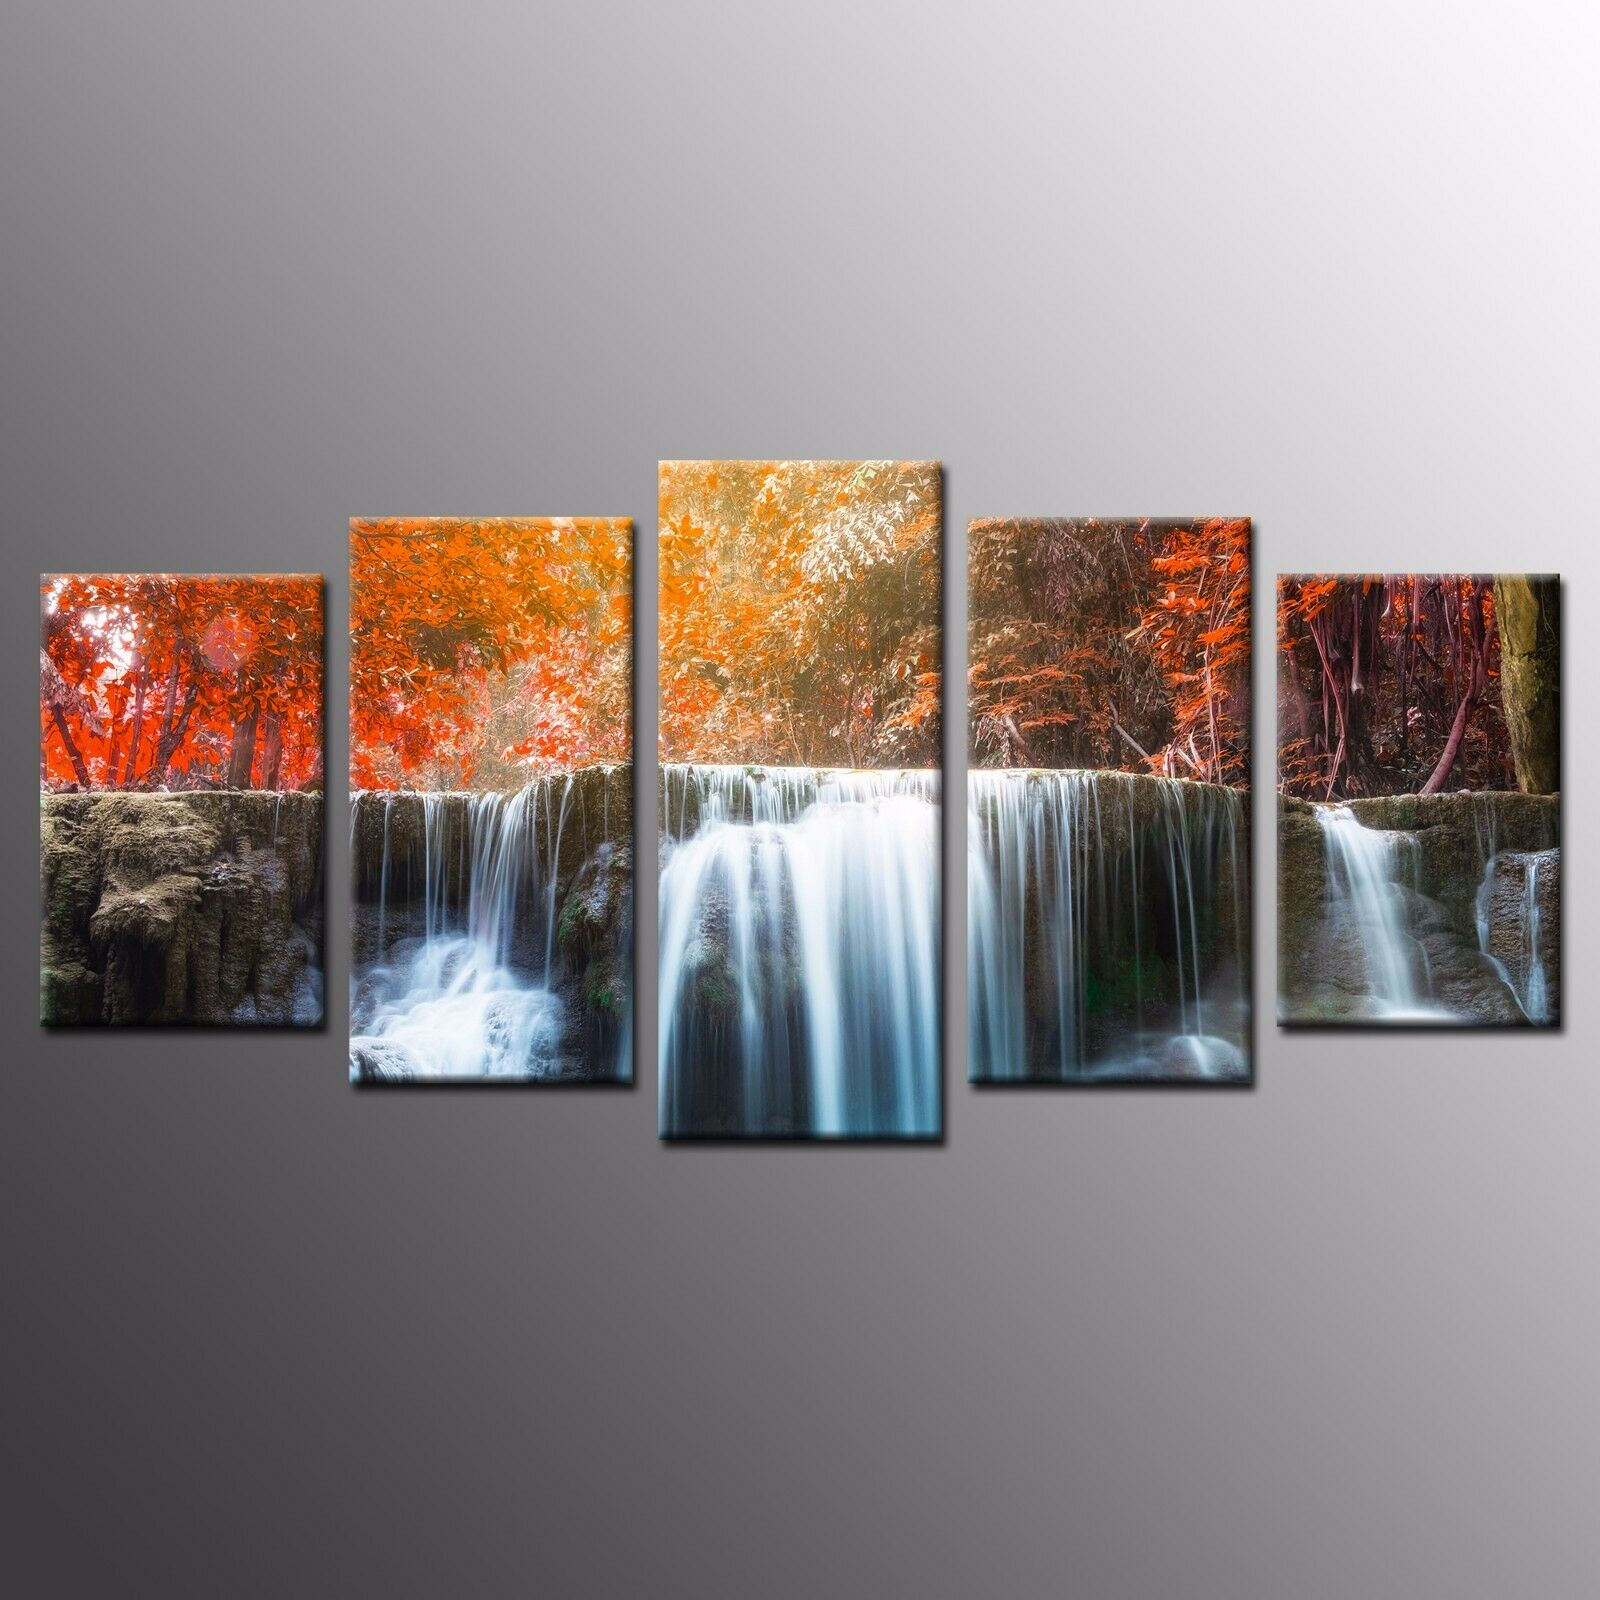 FRAMED Canvas Wall Art For Home Decor Autumn Waterfall Photo Canvas Print-5pcs